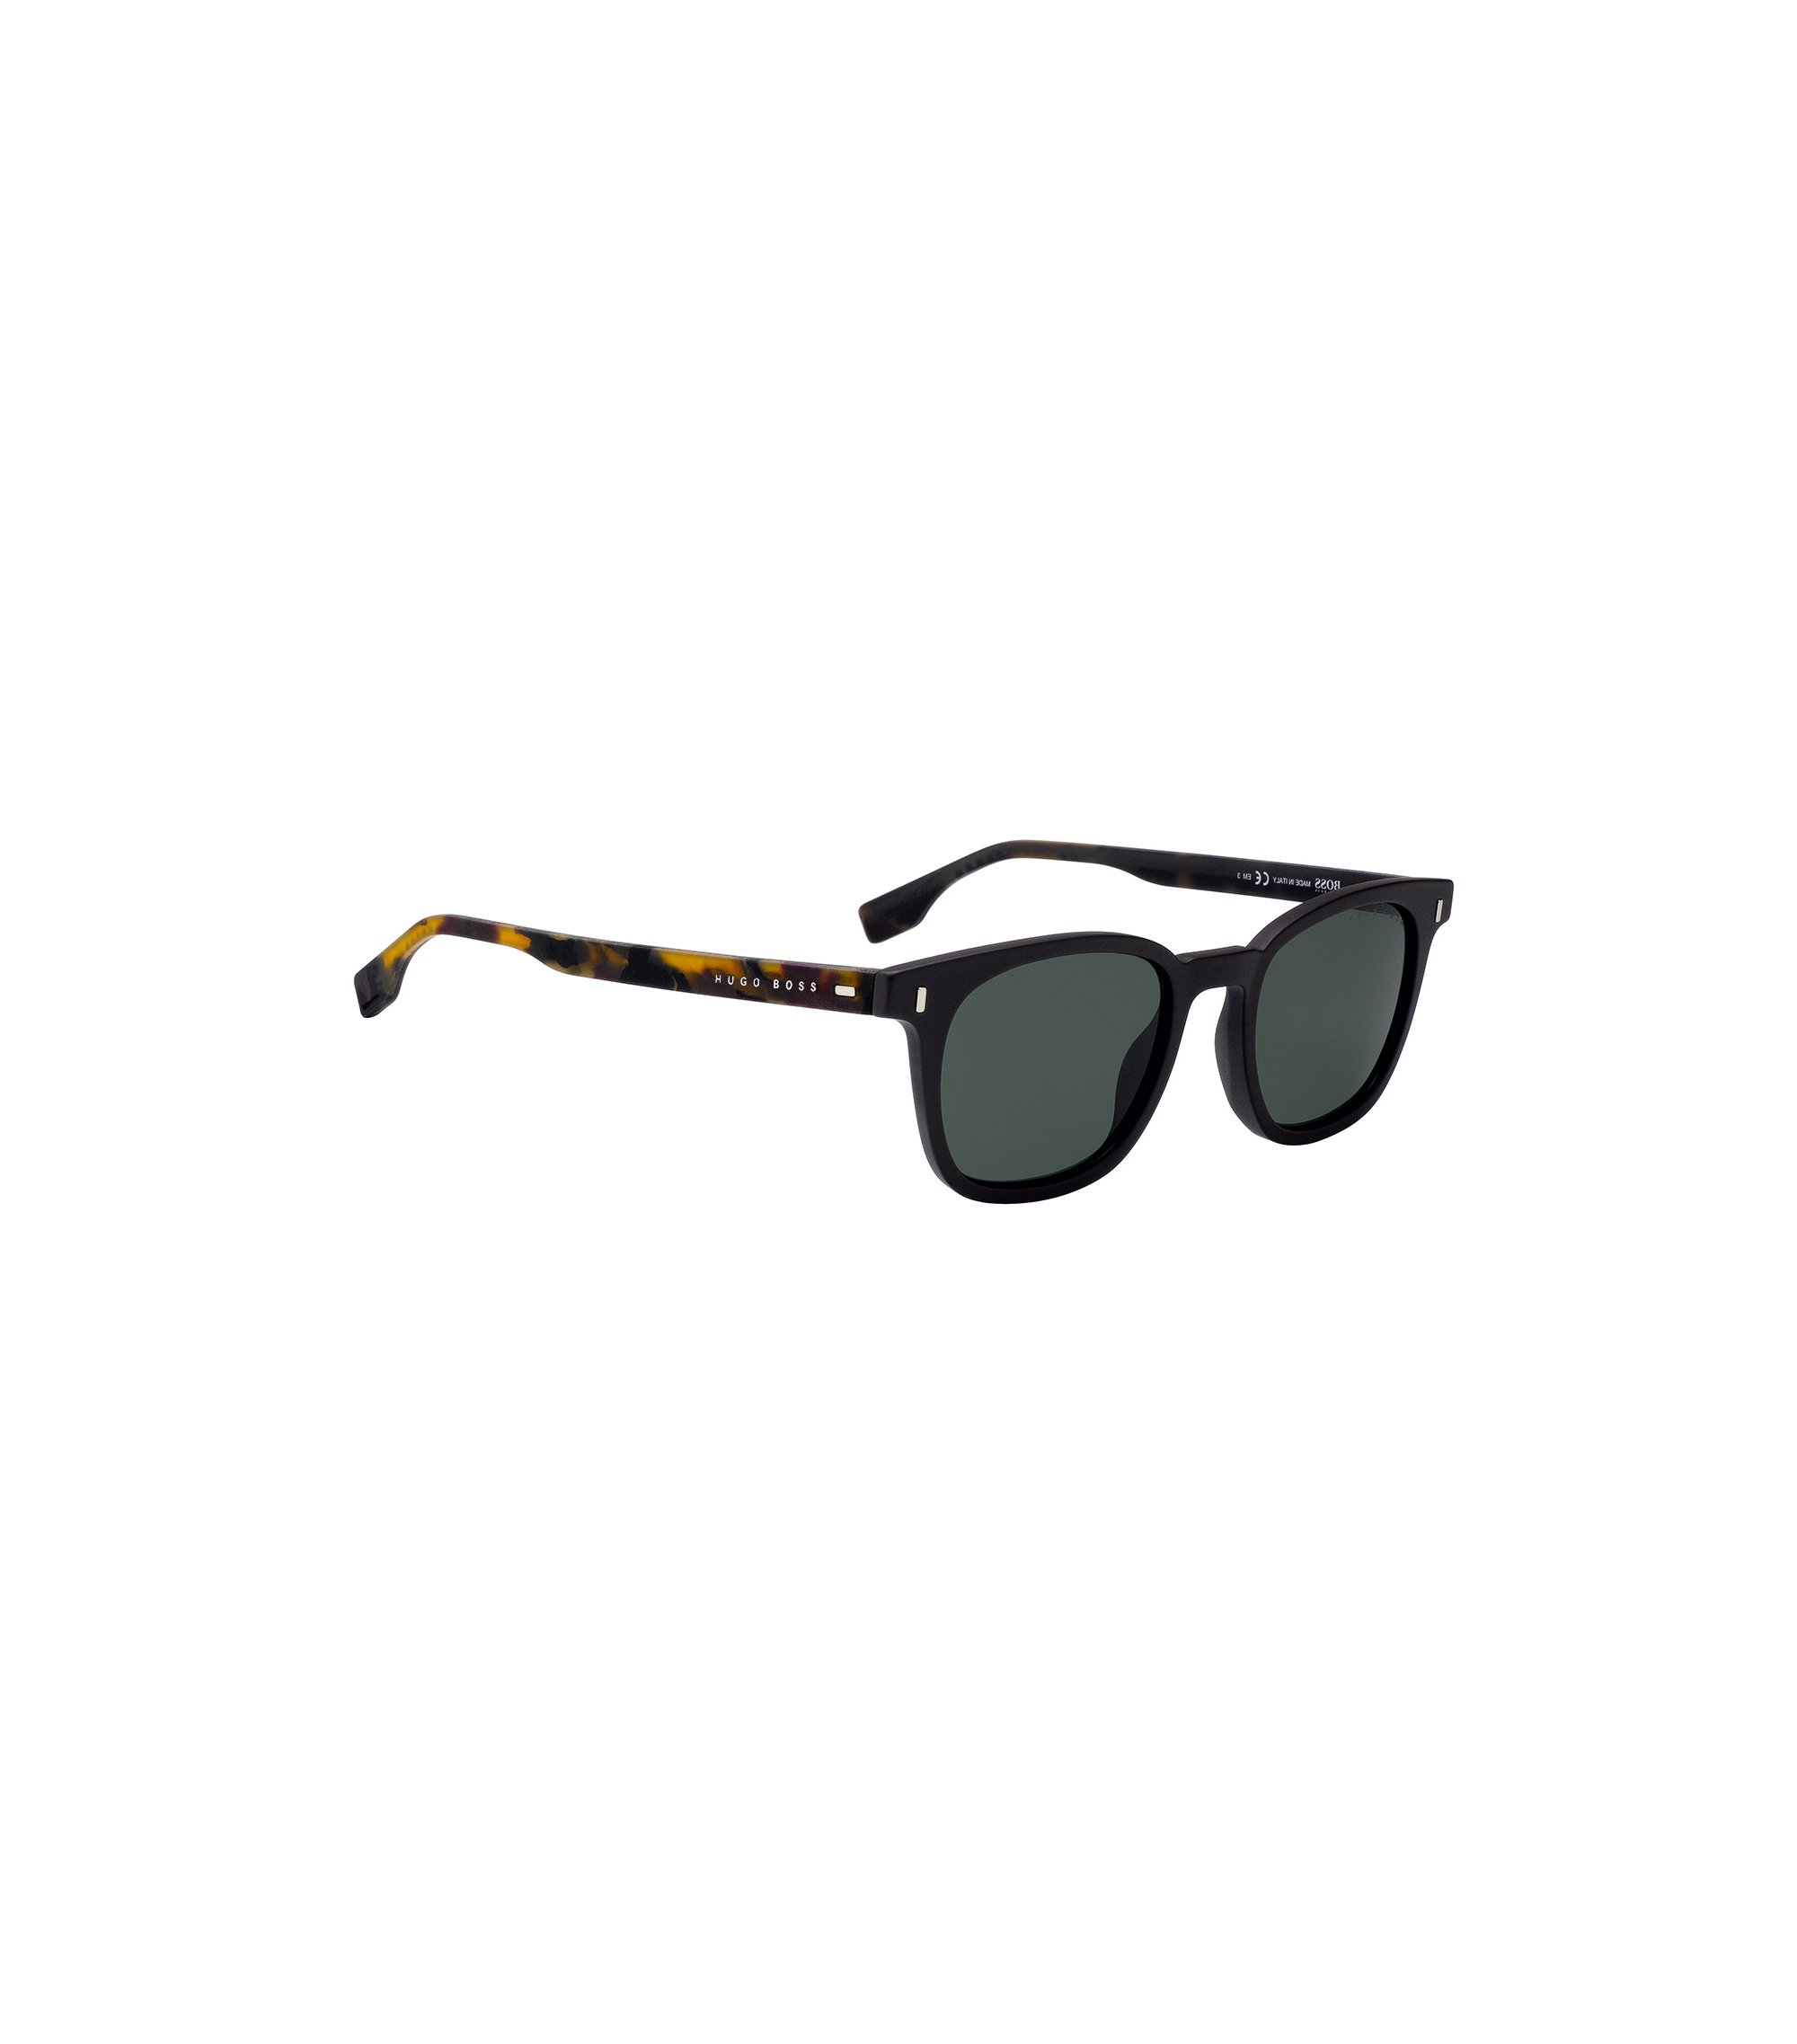 Acetate sunglasses with Havana rubber temples, Assorted-Pre-Pack